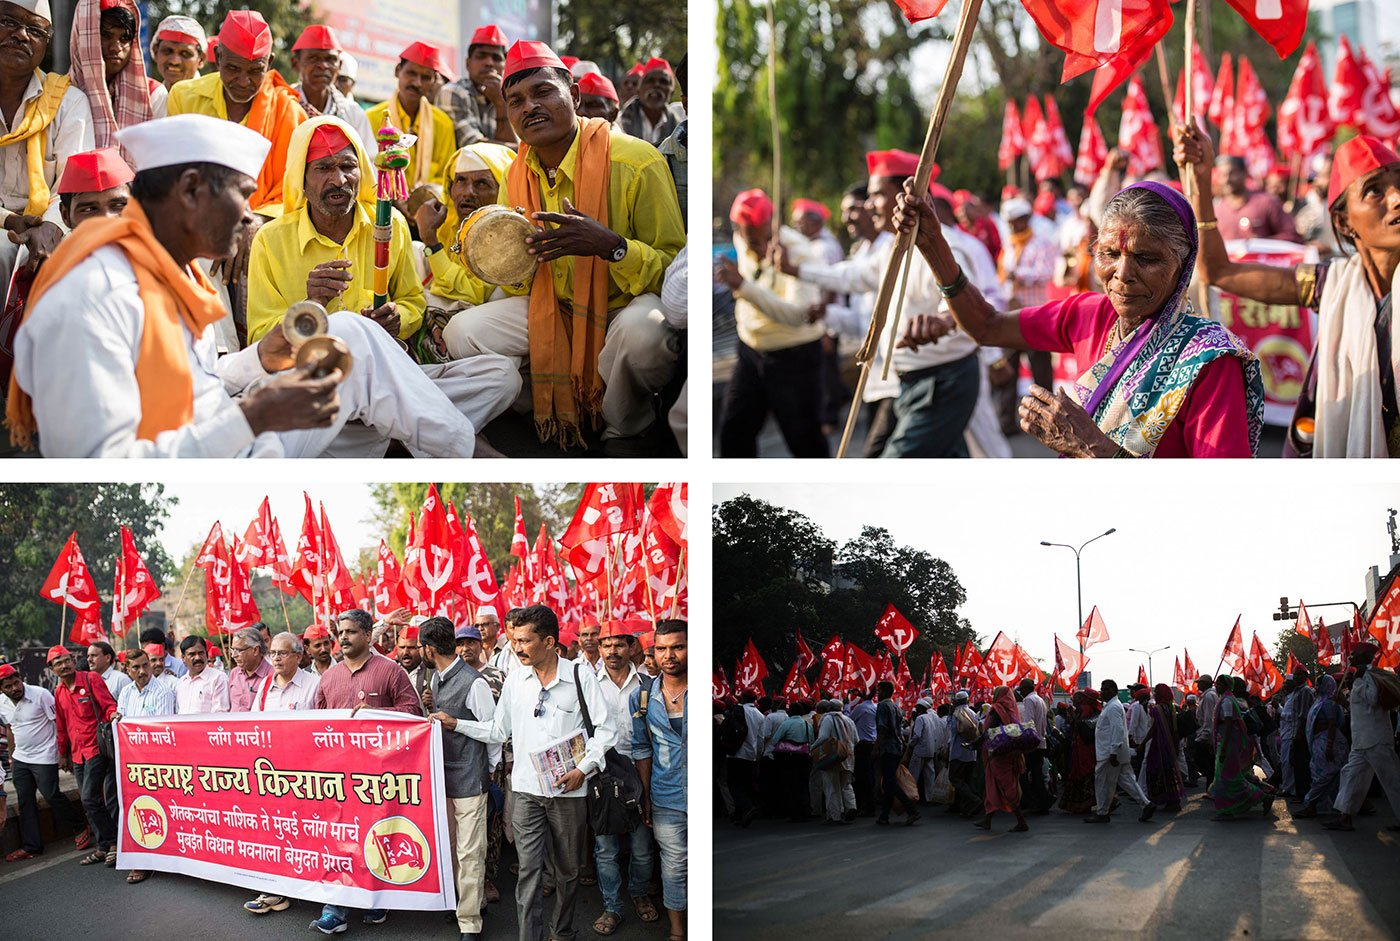 Top left: Farmers from Adivasi communities sing a devotional song. Top right: Rukmabai Bendkule, 60, at the forefront of the march, dances with a red flag in hand. Bottom: Thousands of farmers on the move with flags and banners.